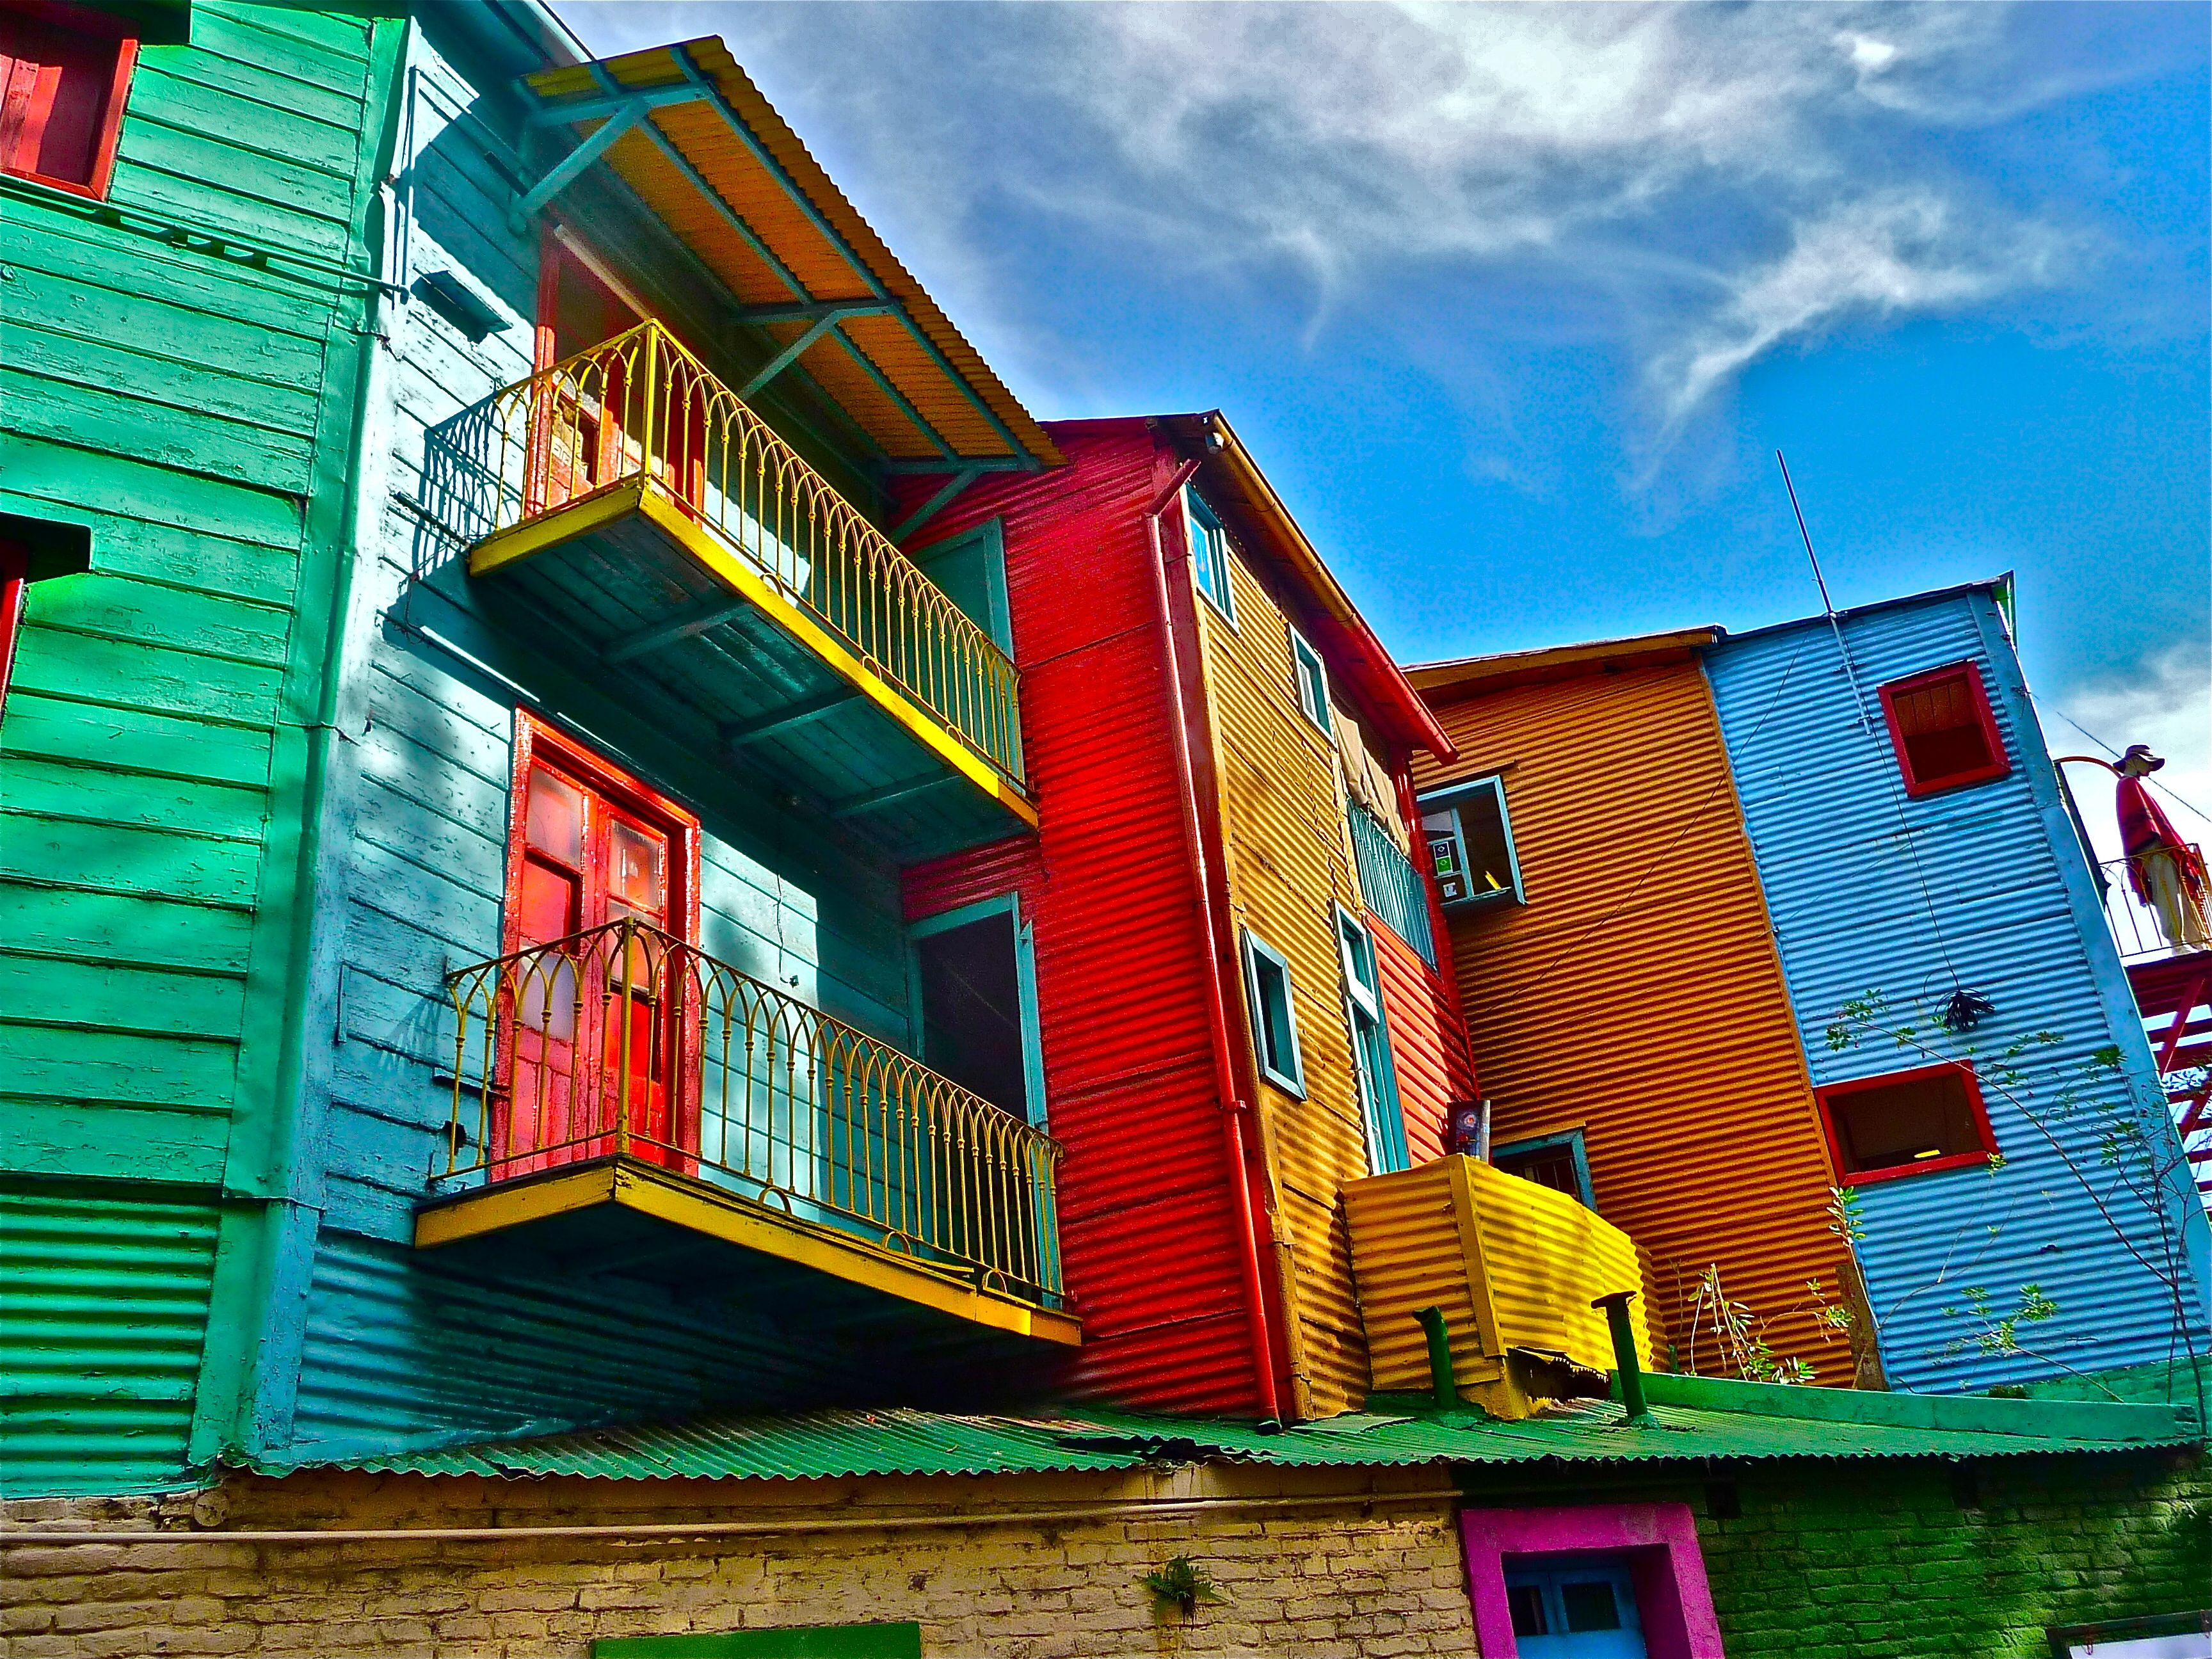 The cheap Argentine peso means that it's unusually inexpensive right now to visit the famous La Boca neighborhood in Buenos Aires.